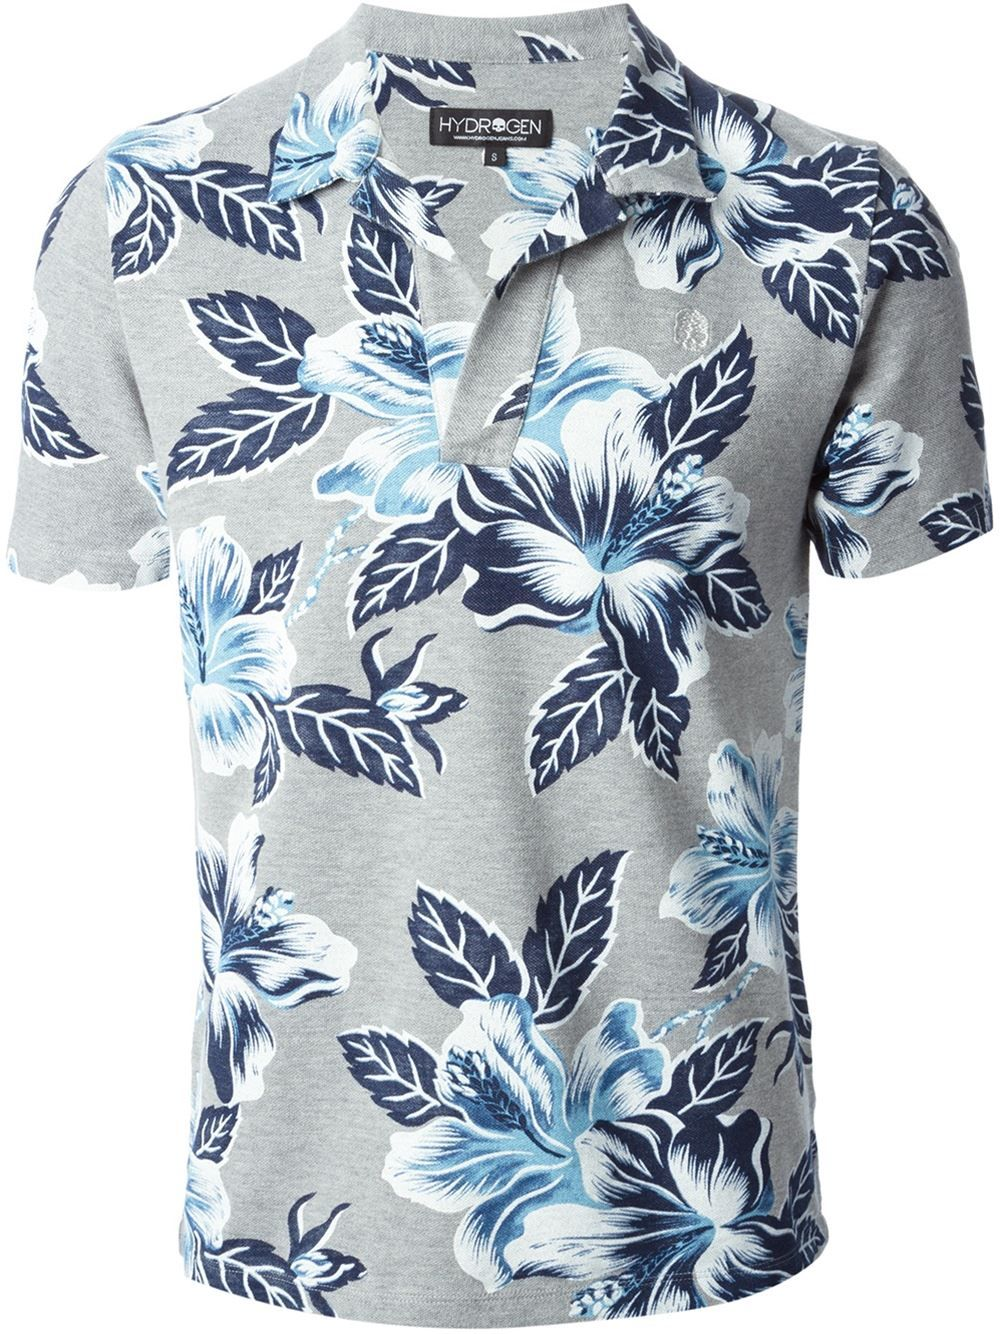 b702a79eded21 Hydrogen Camisa Polo Floral. Stylized Hybiscus pattern on light gray. More  Men's Fashion Trends, Polo Shirts and trending outfits ...